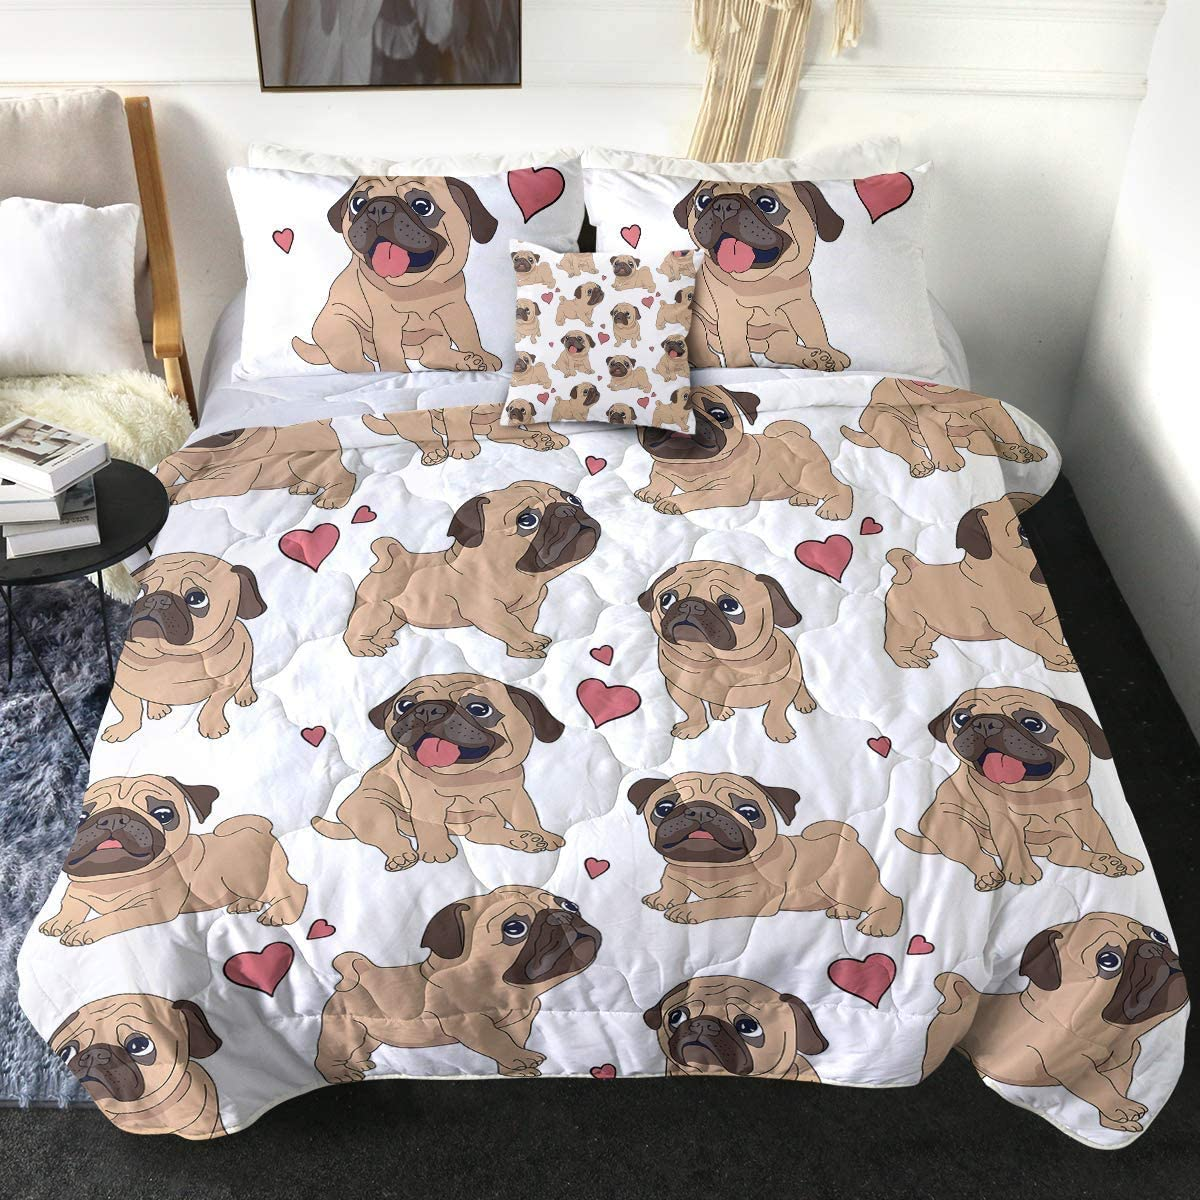 8. Cute Pet Hearts Bedding Sets with 2 Pillow Shams and 1 Cushion Cover